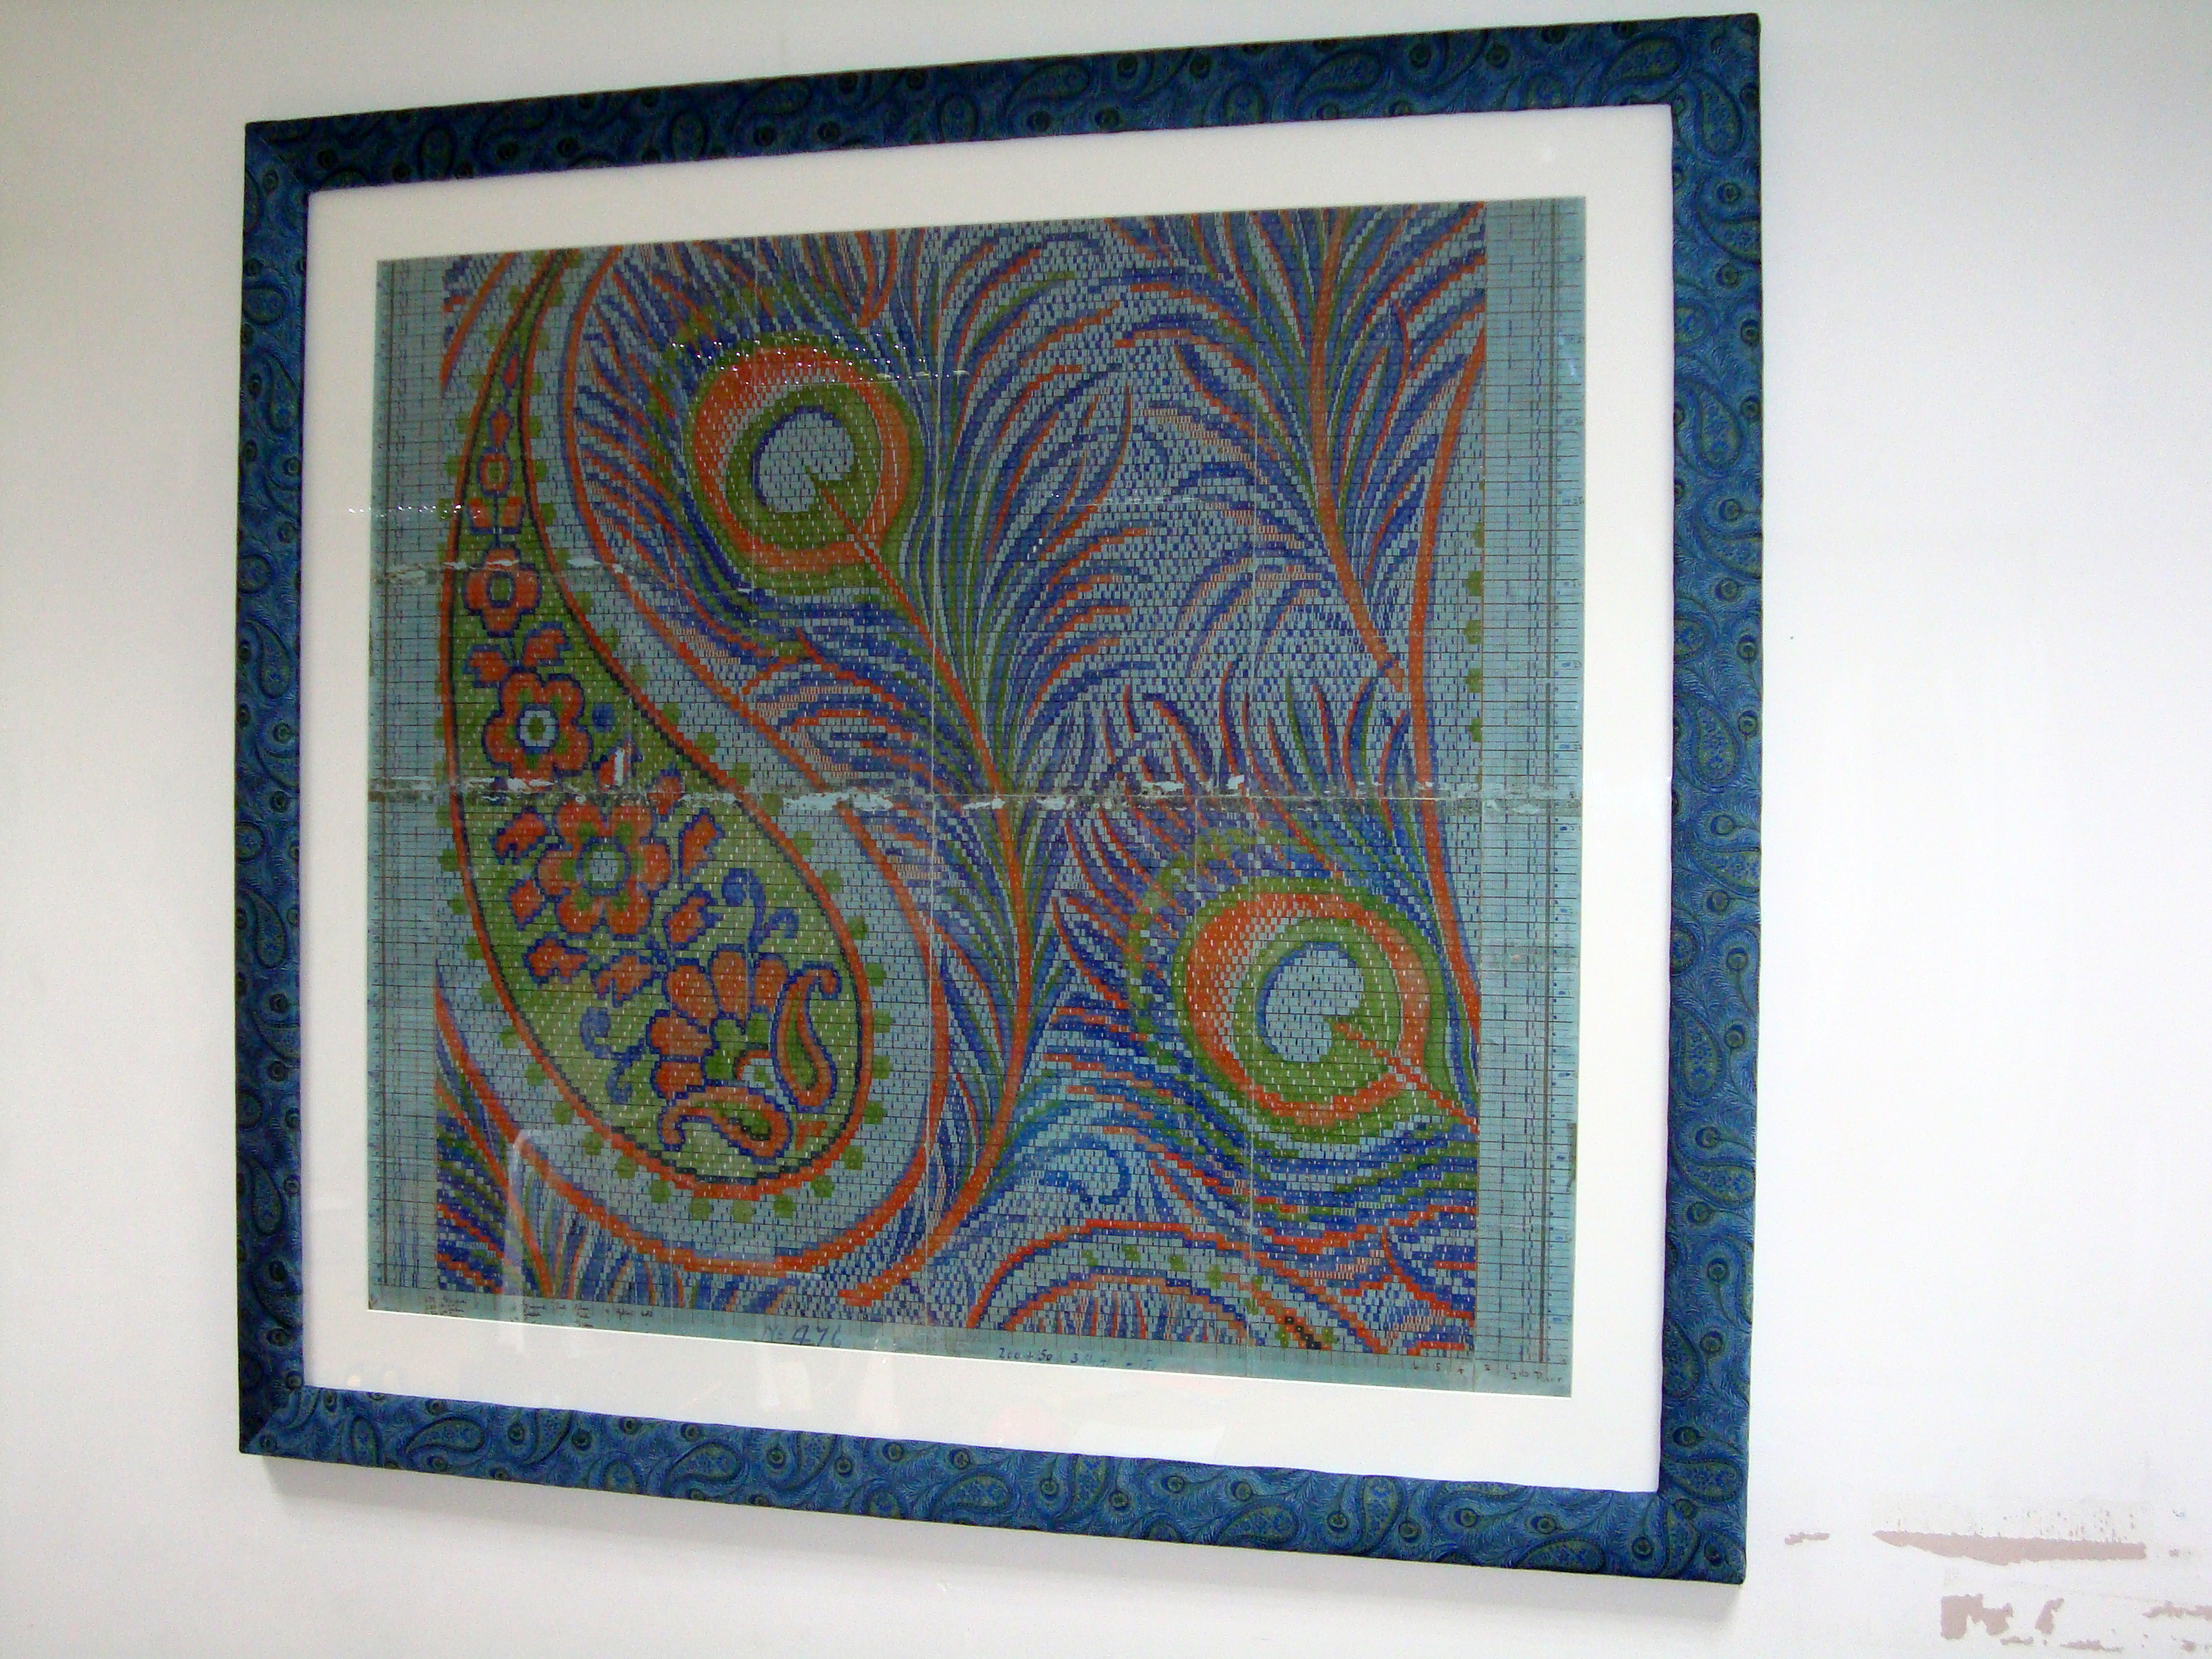 In co-operation with Frin Arnold, Textile Artist